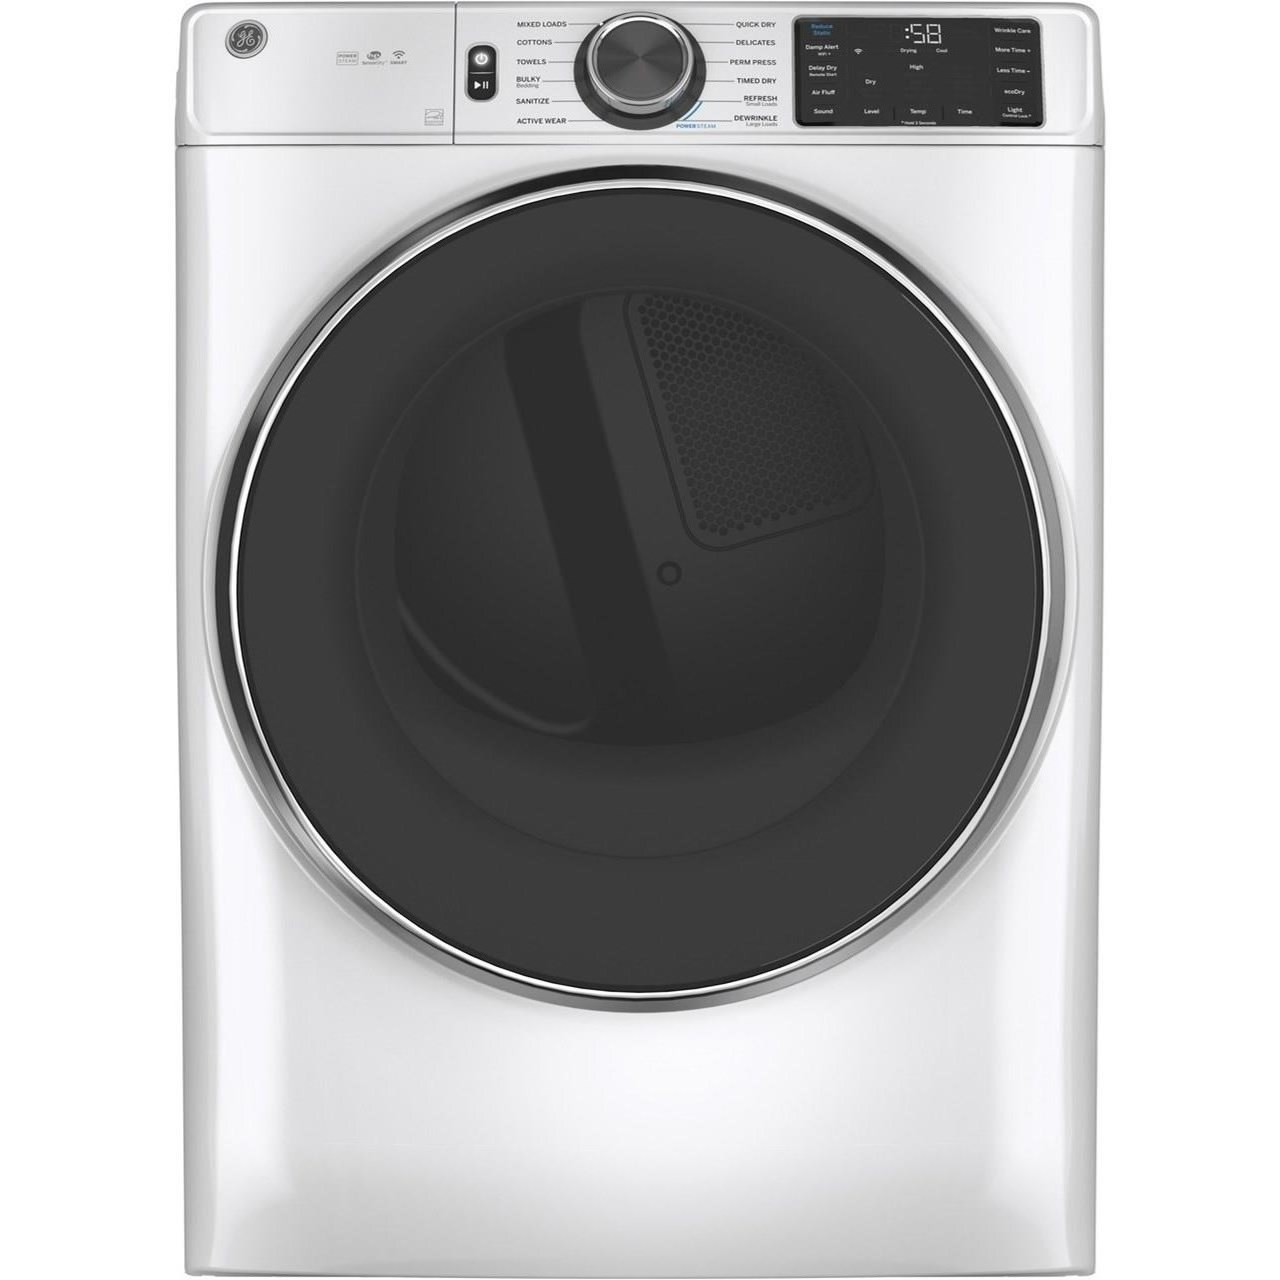 Home Laundry GE® 7.8 cu. ft. Capacity Gas Dryer by GE Appliances at Westrich Furniture & Appliances